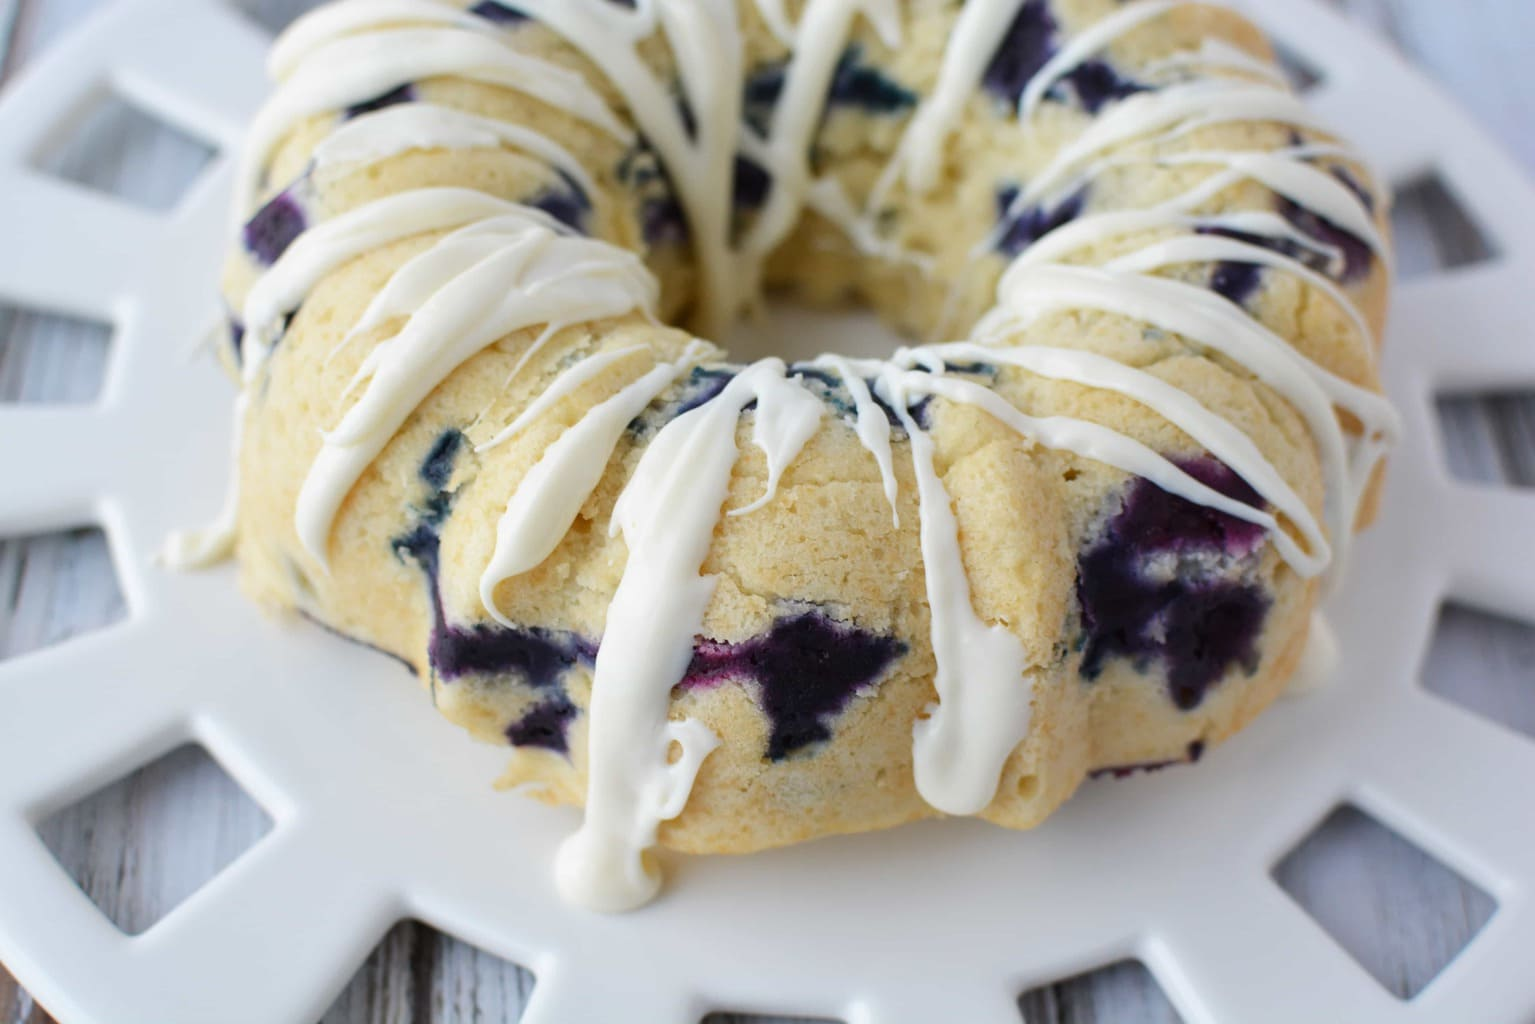 blueberry breakfast cake drizzled with white icing